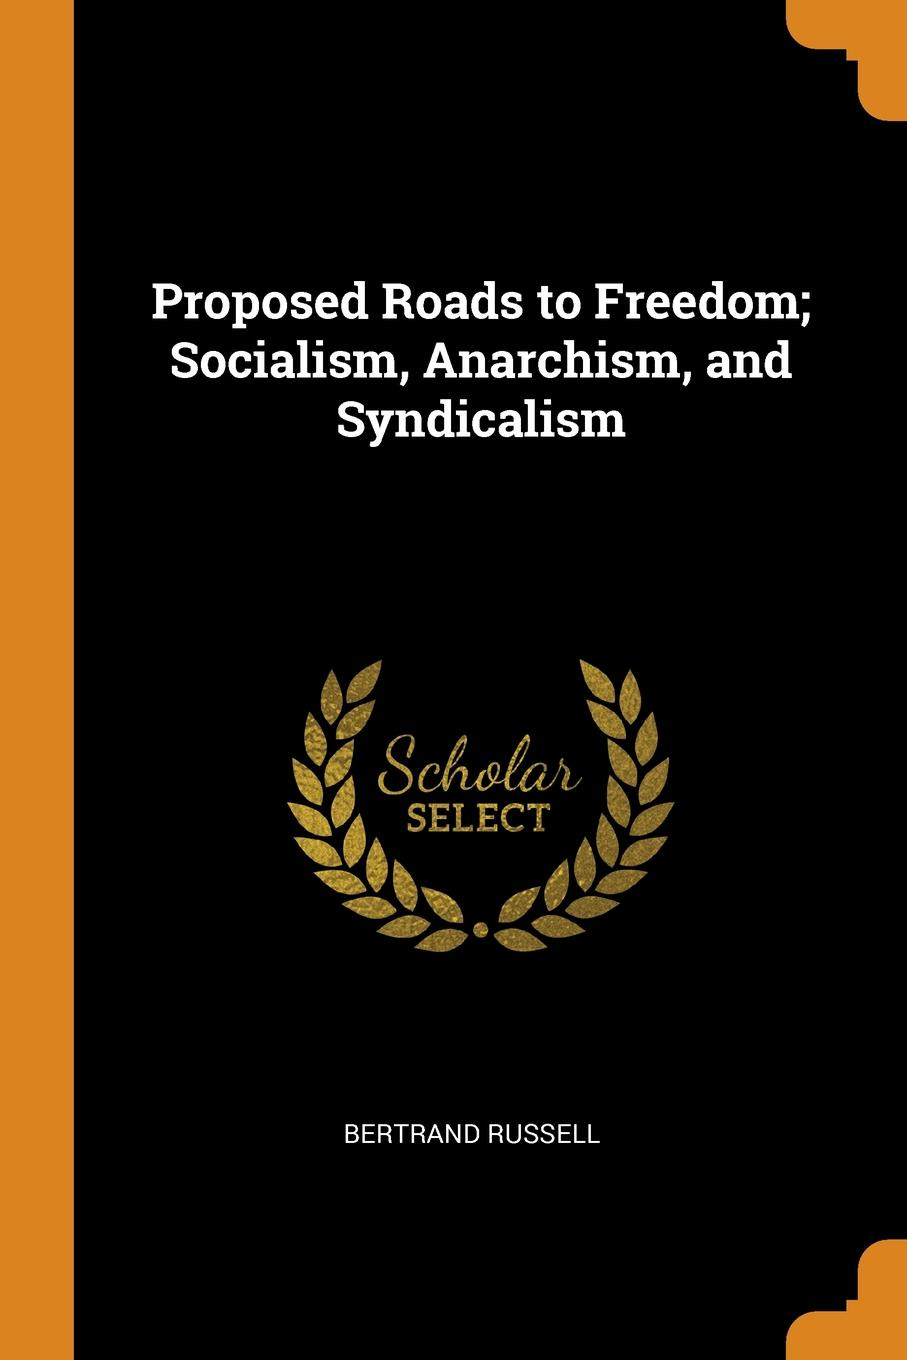 Bertrand Russell Proposed Roads to Freedom; Socialism, Anarchism, and Syndicalism